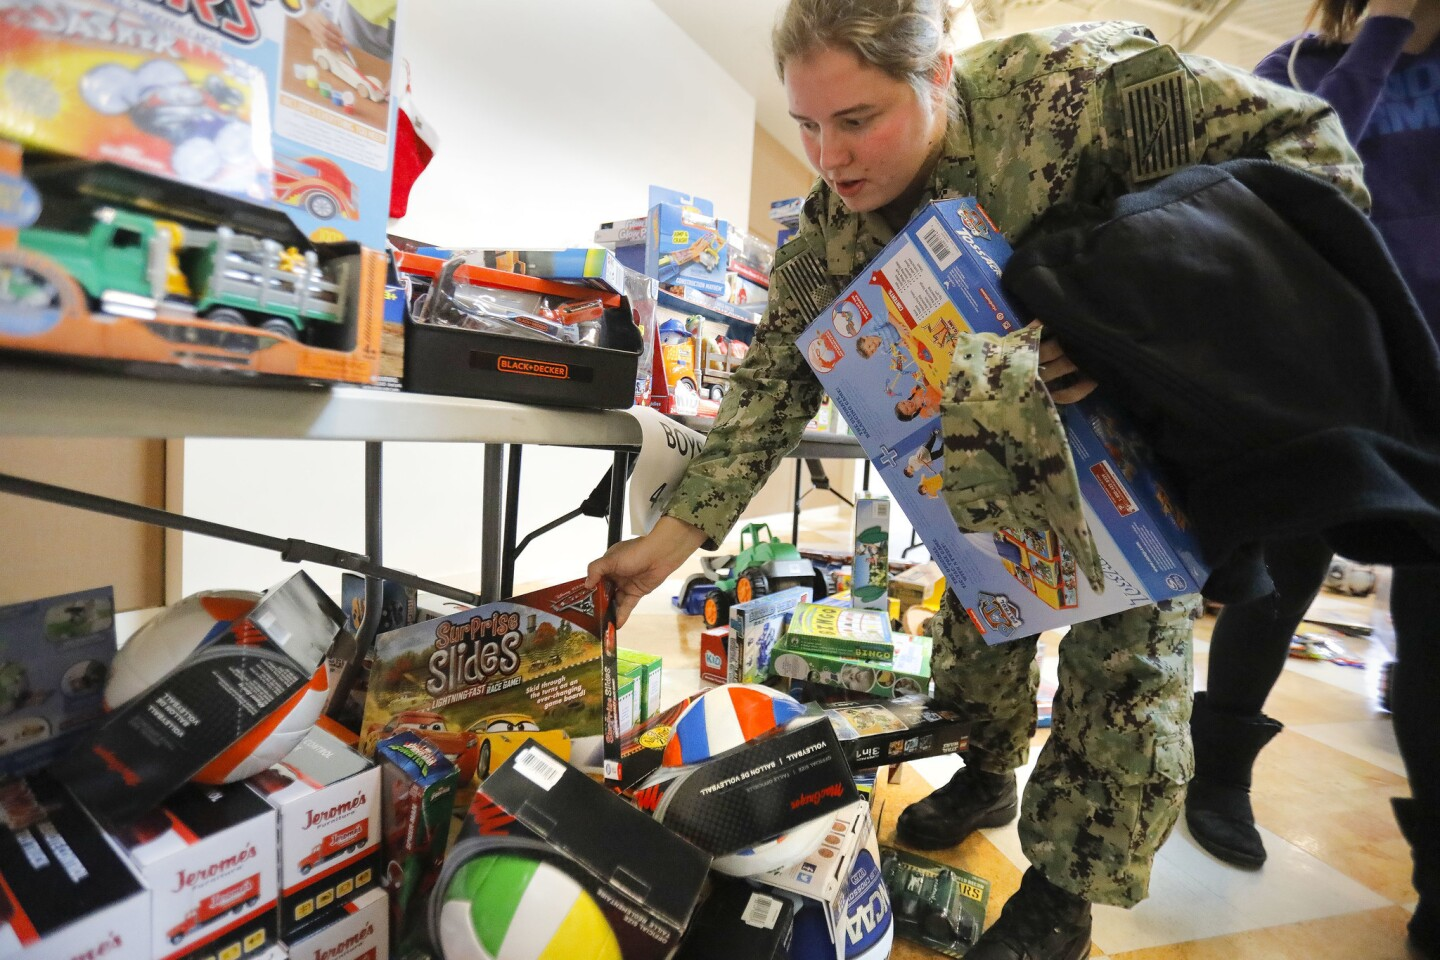 Navy Petty Officer 2nd Class Savanna Nowell picks out gifts for her children while visiting the 27th annual Military Family Holiday Toy Program at the Armed Services YMCA San Diego Chapel in Murphy Canyon.